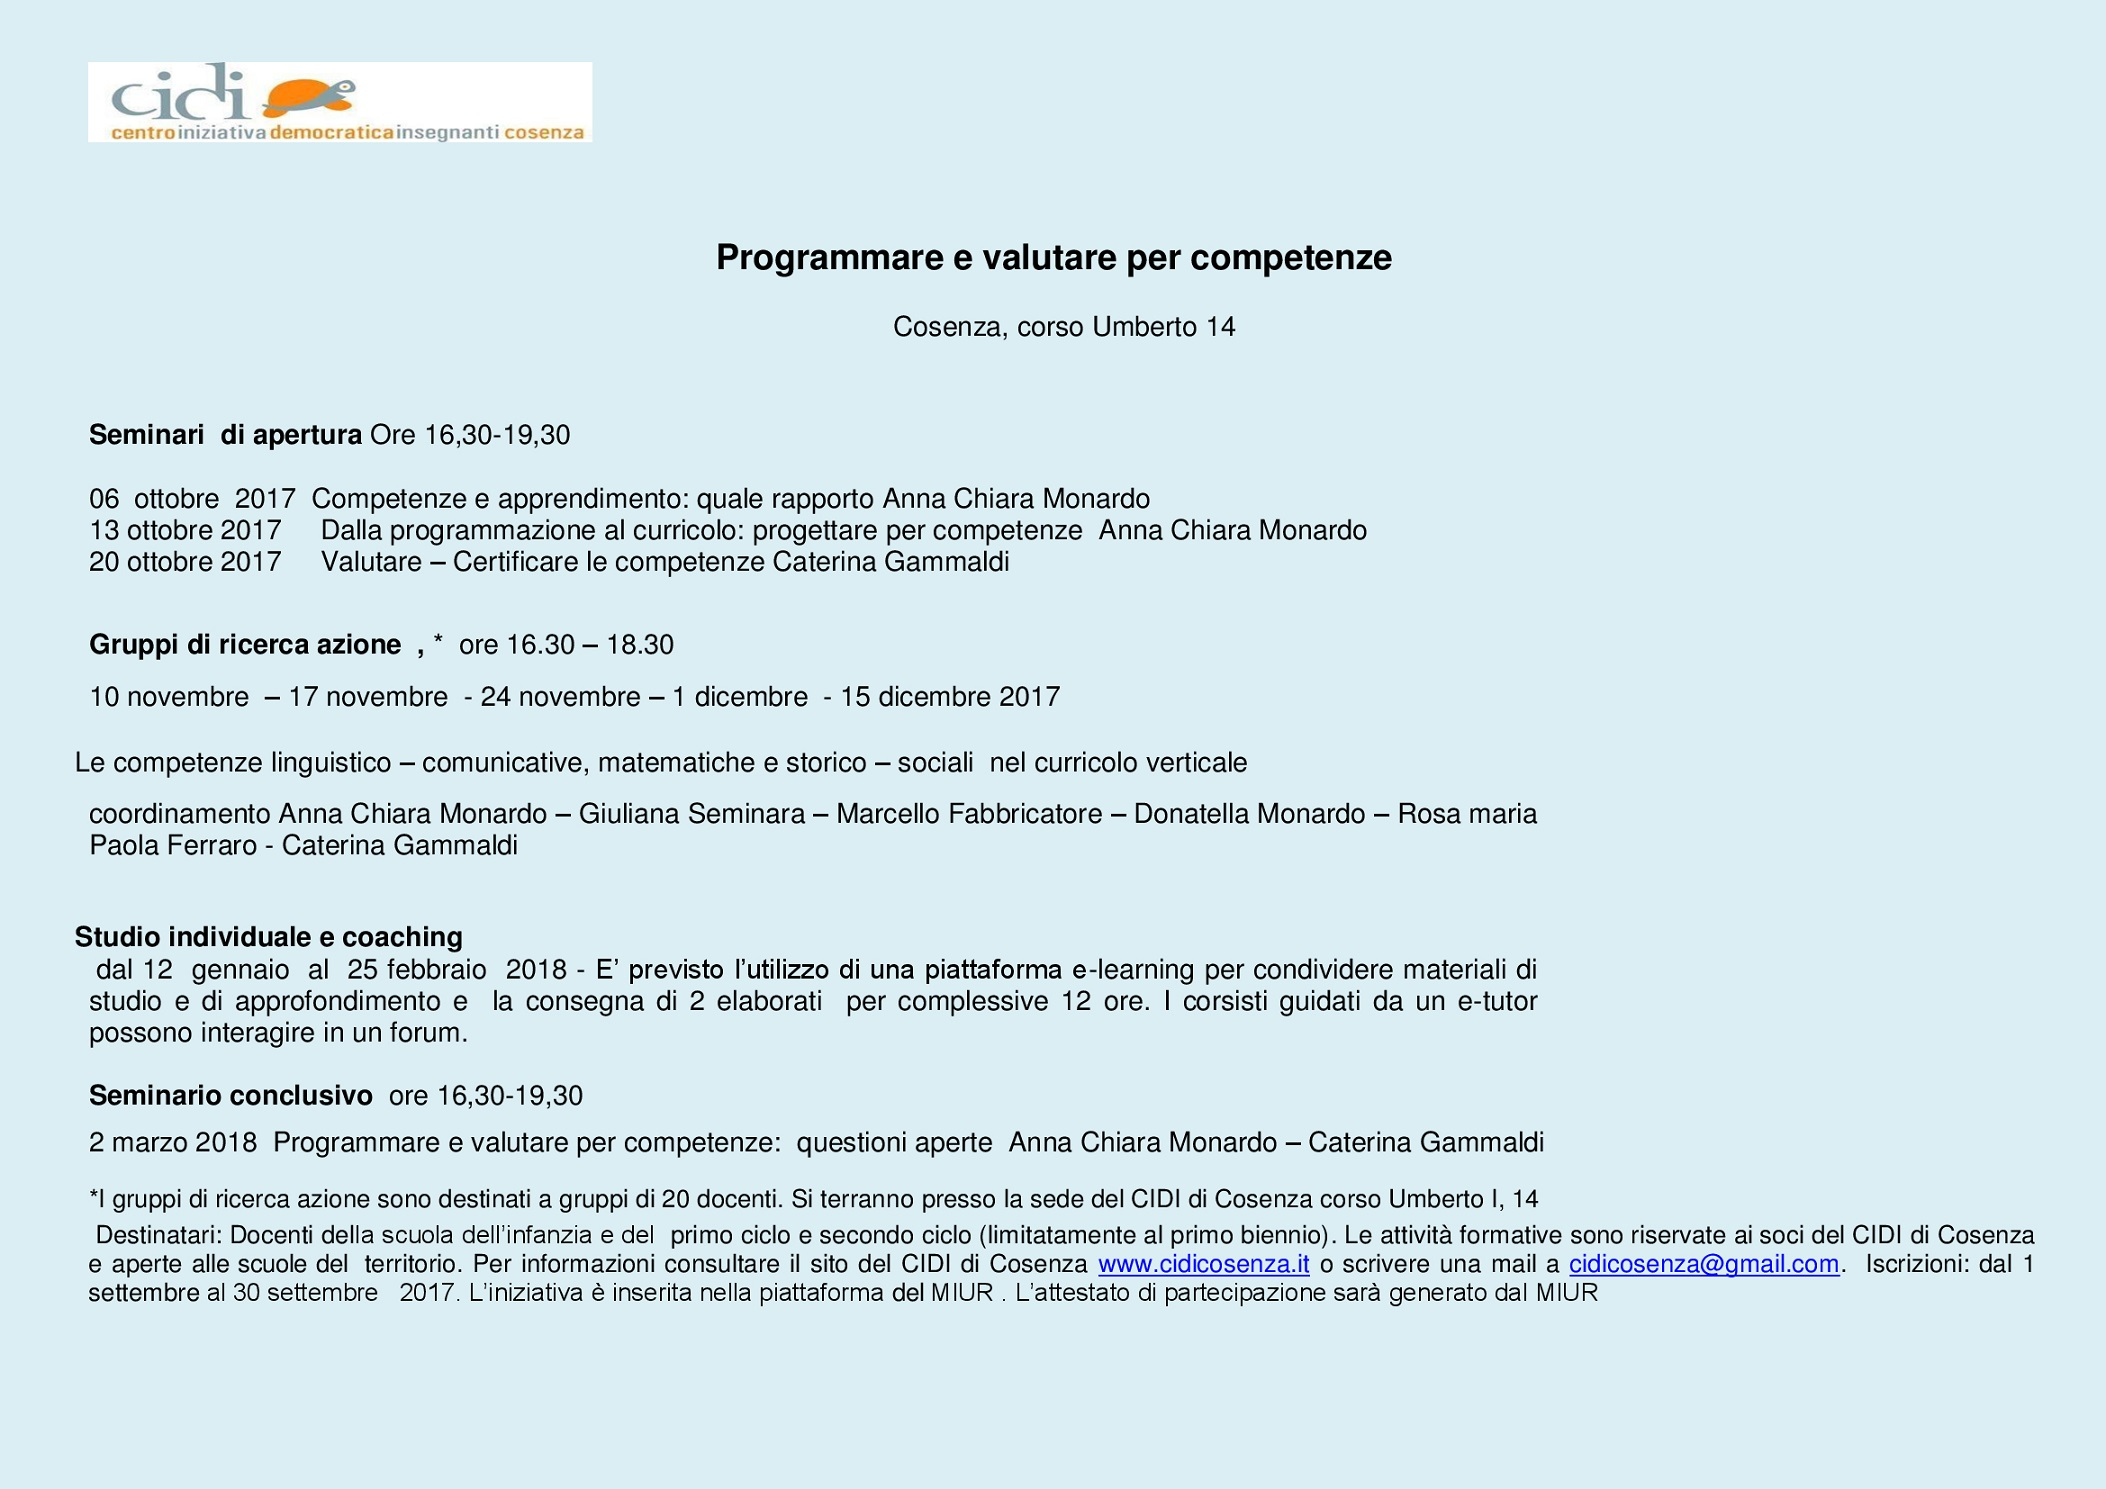 4_loc_program-e-valut-per-compet